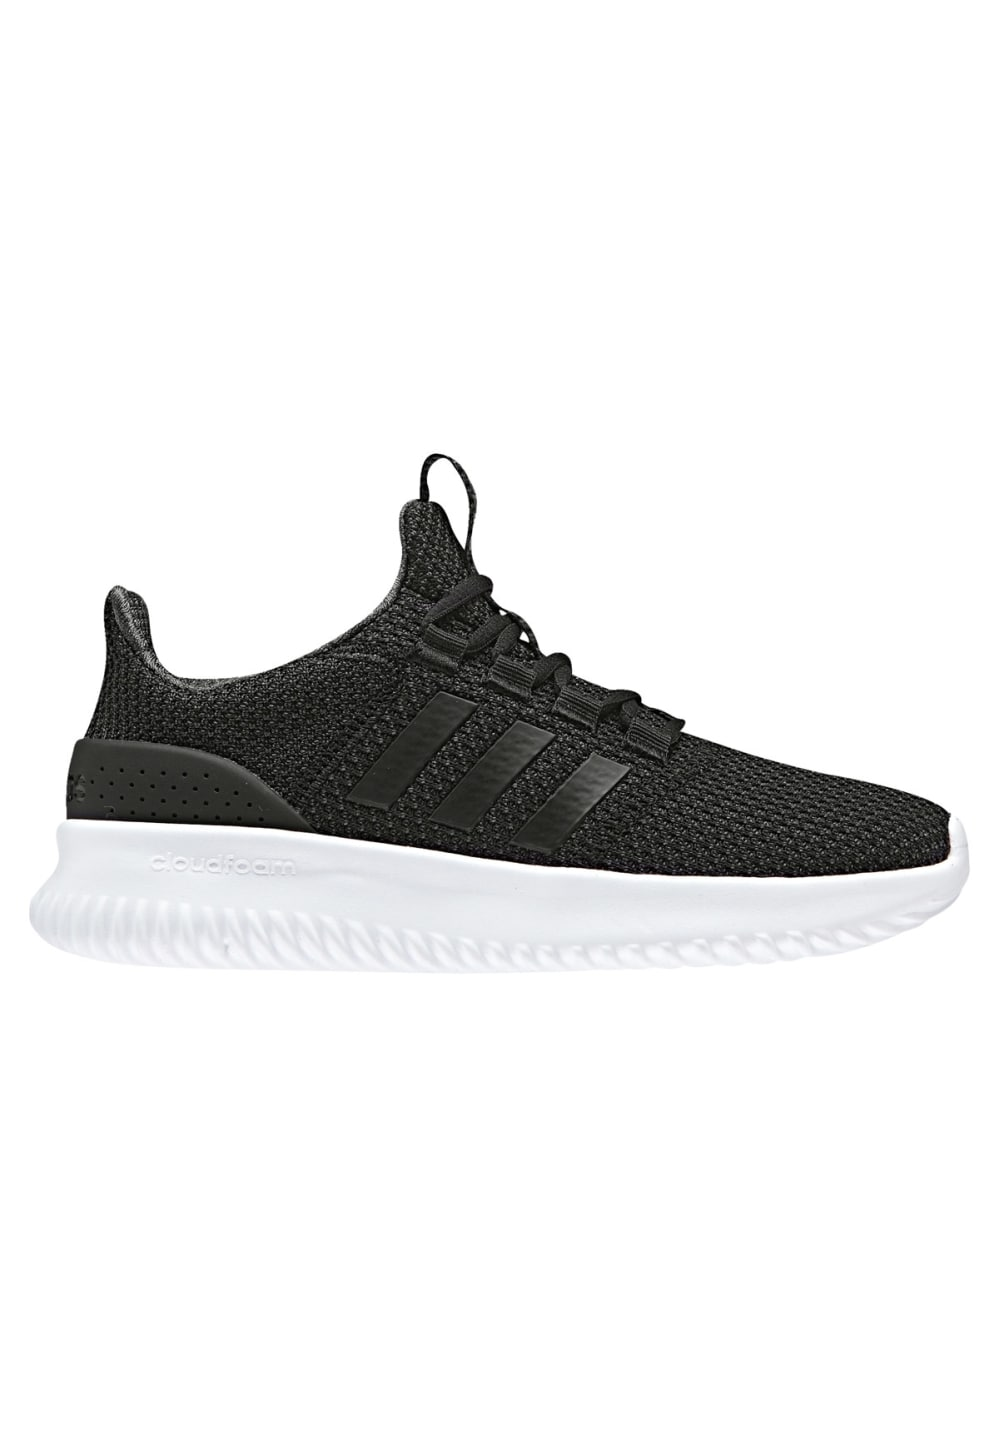 13885f31625 ... adidas neo Cloudfoam Ultimate - Sneaker - Black. Back to Overview. 1;  2. Previous